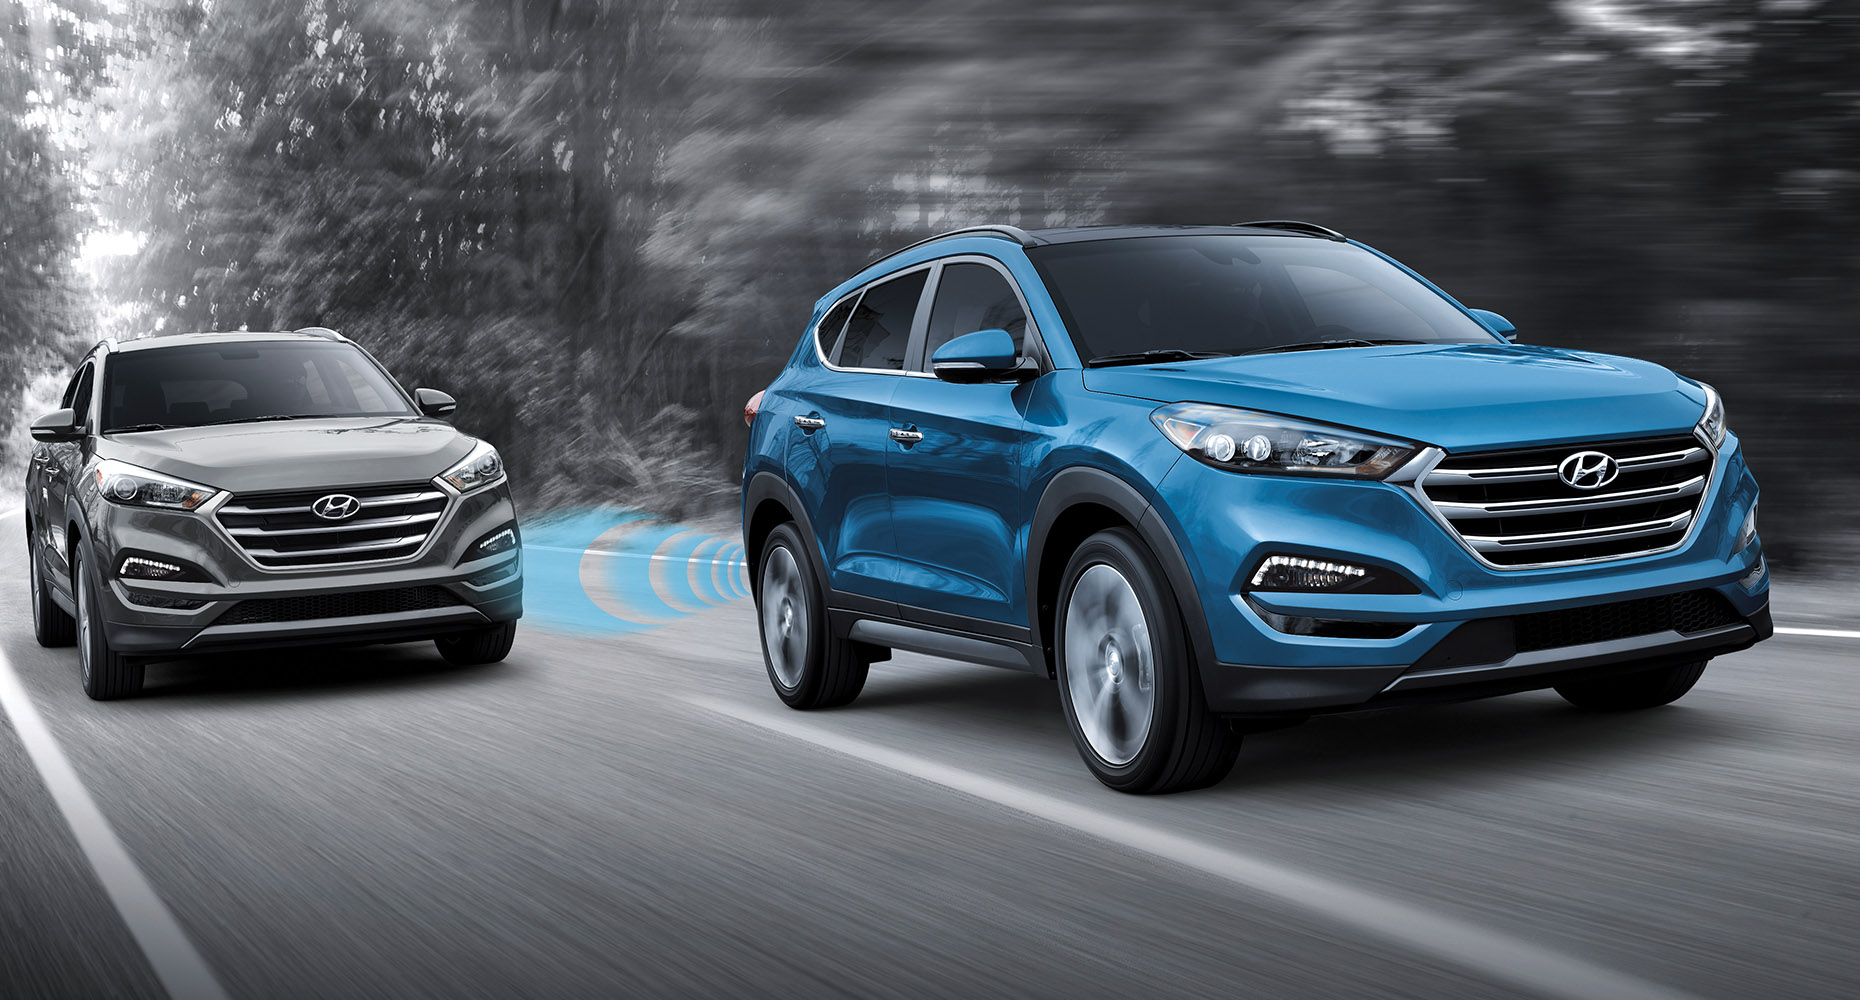 2018 Hyundai Tucson for sale near Steinbach, MB